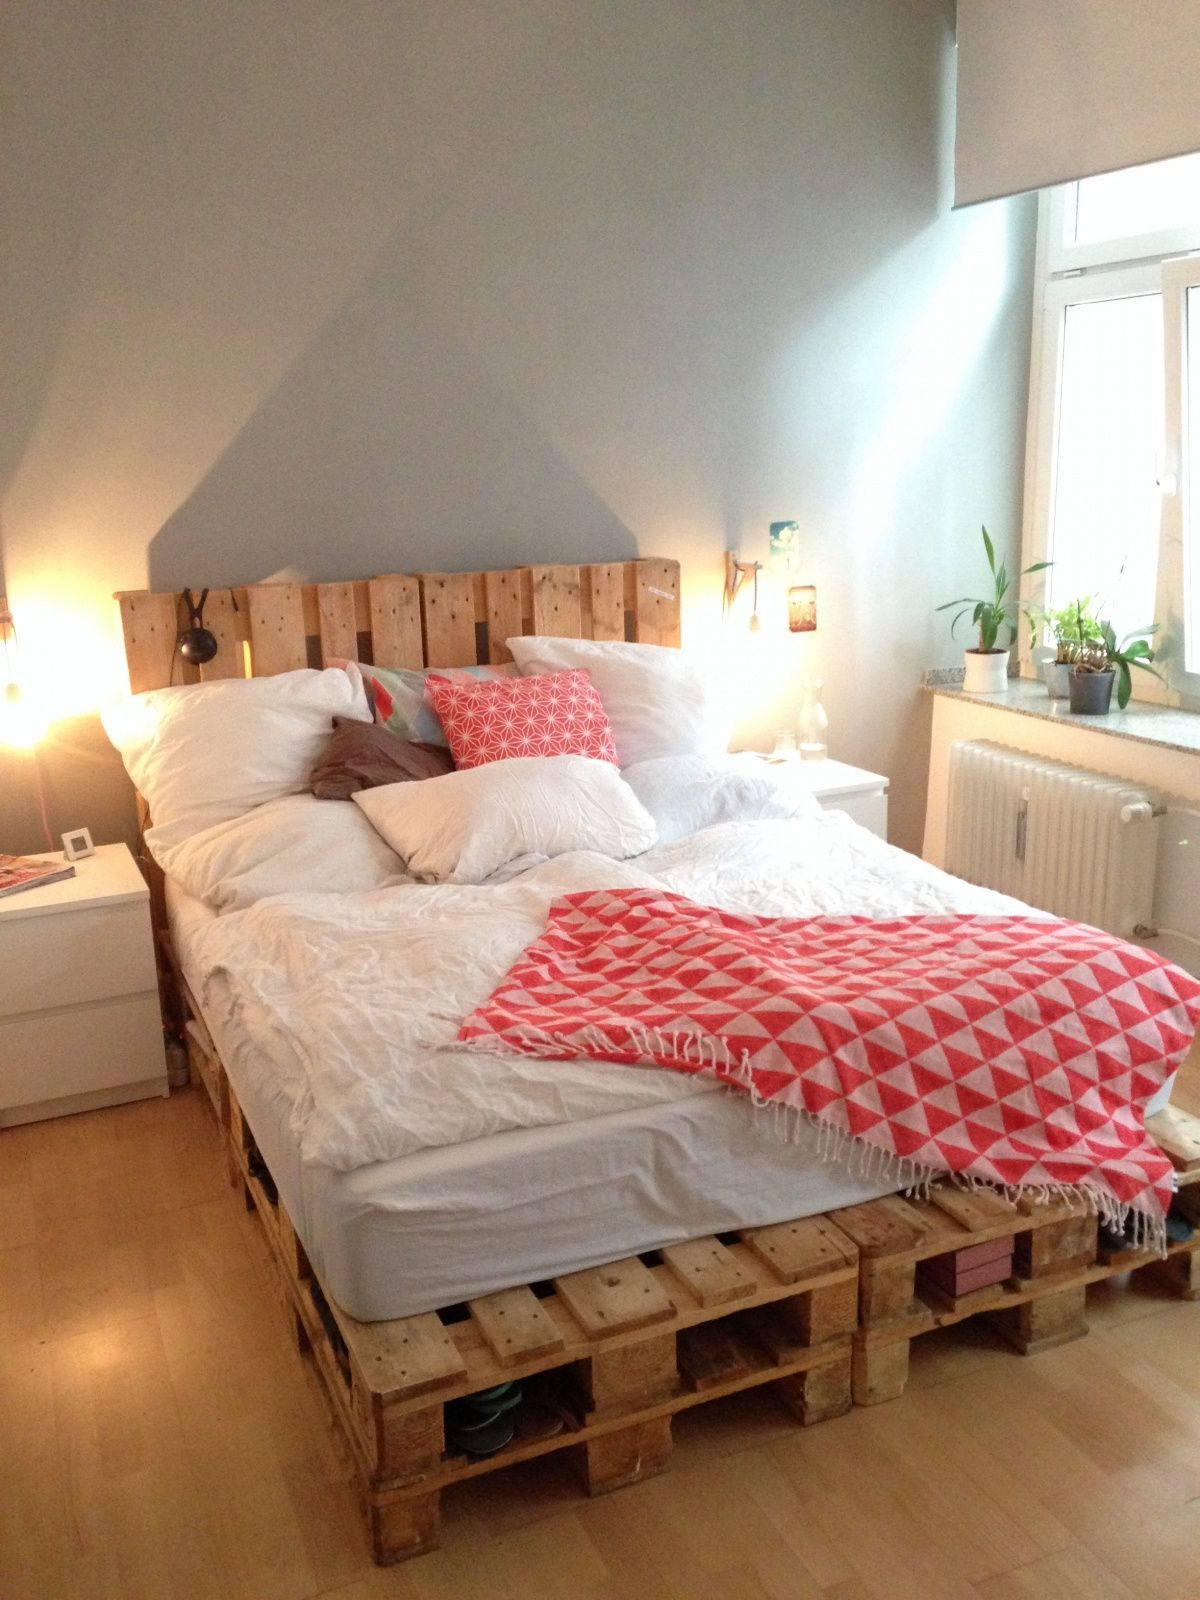 Palleten Bett Palettenbett Zum Träumen Bedroom Ideas In 2019